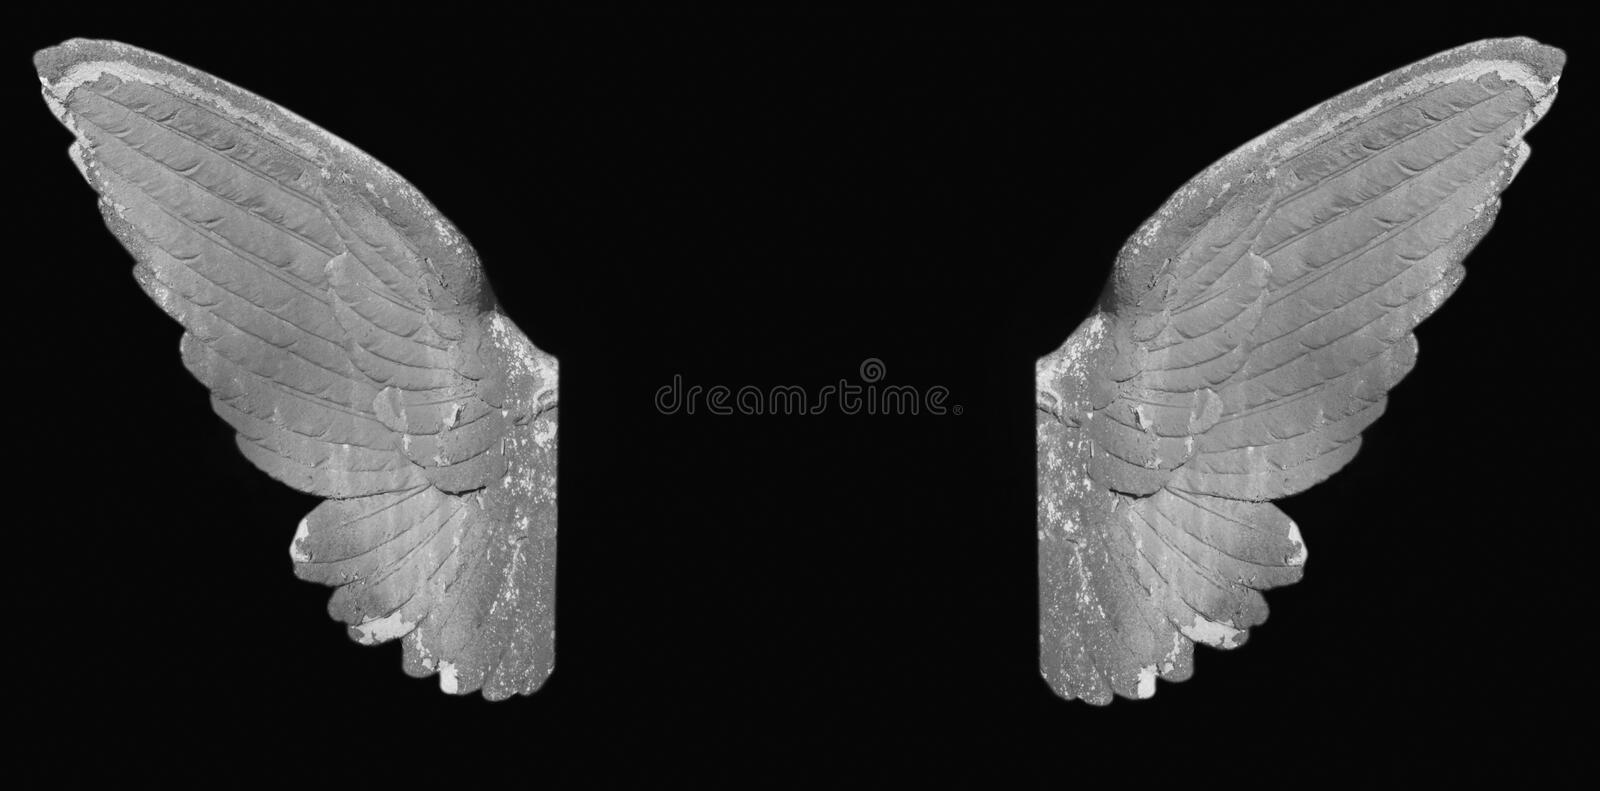 Golden angel wings. Angel wings as a symbol of goodness and holiness royalty free stock photography